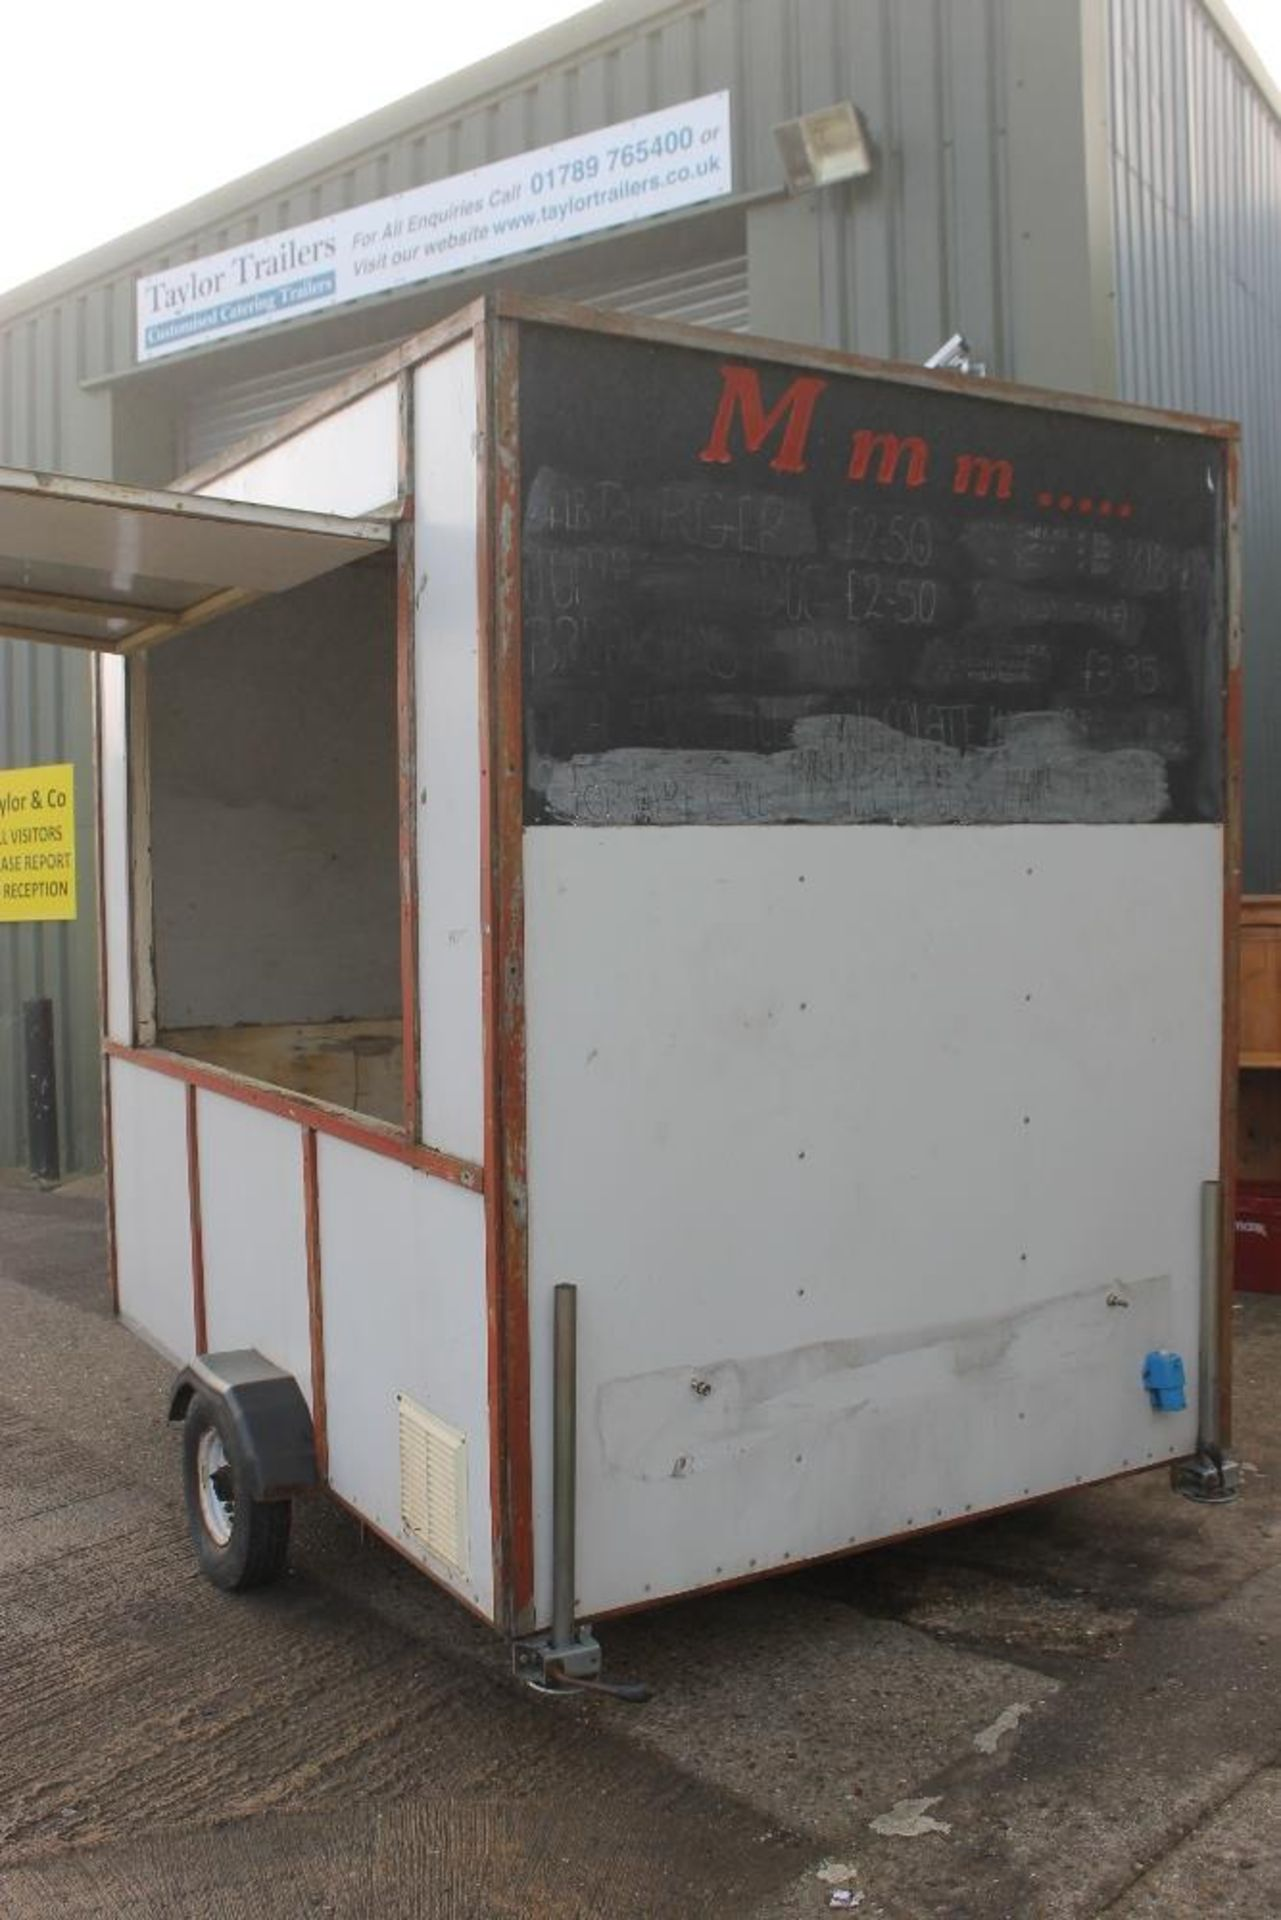 Lot 6 - Small Starter Catering Trailer 7ft x 5ft Metal Construction - NO VAT  This unit is available as a ""